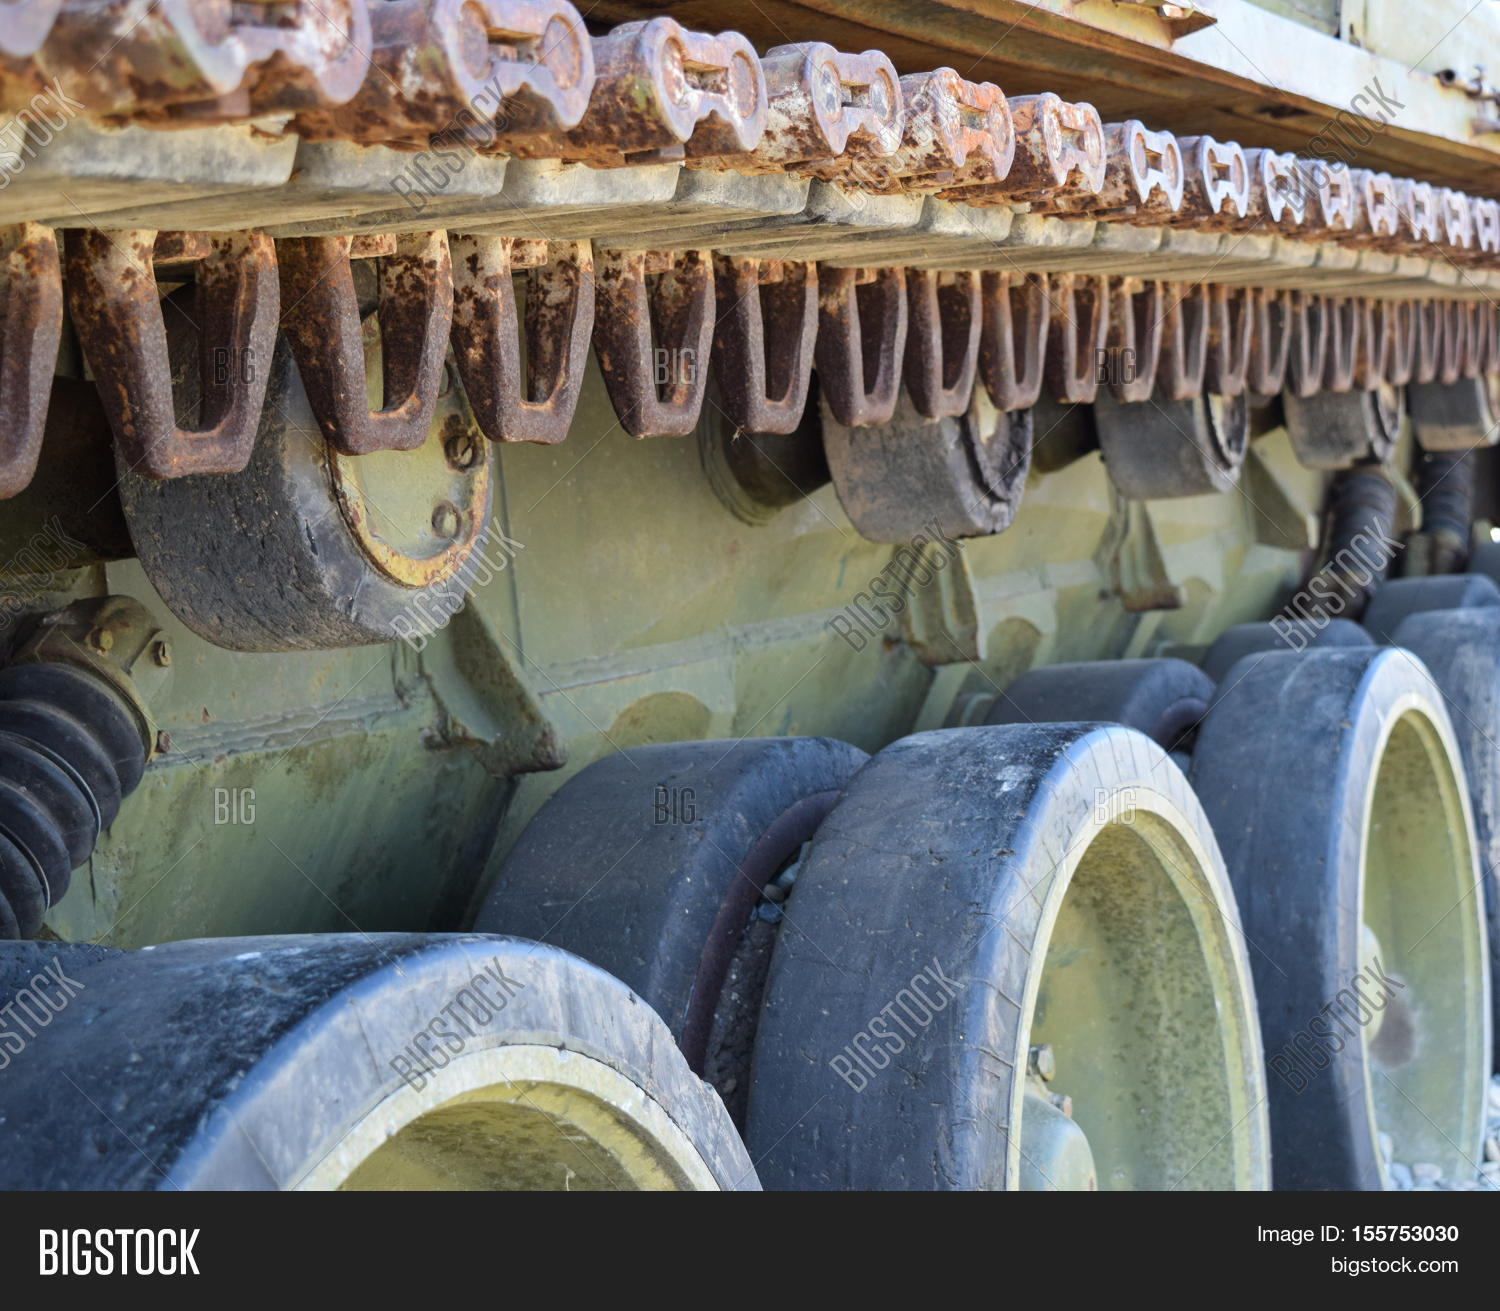 Caterpillar Chain Old Image & Photo (Free Trial) | Bigstock